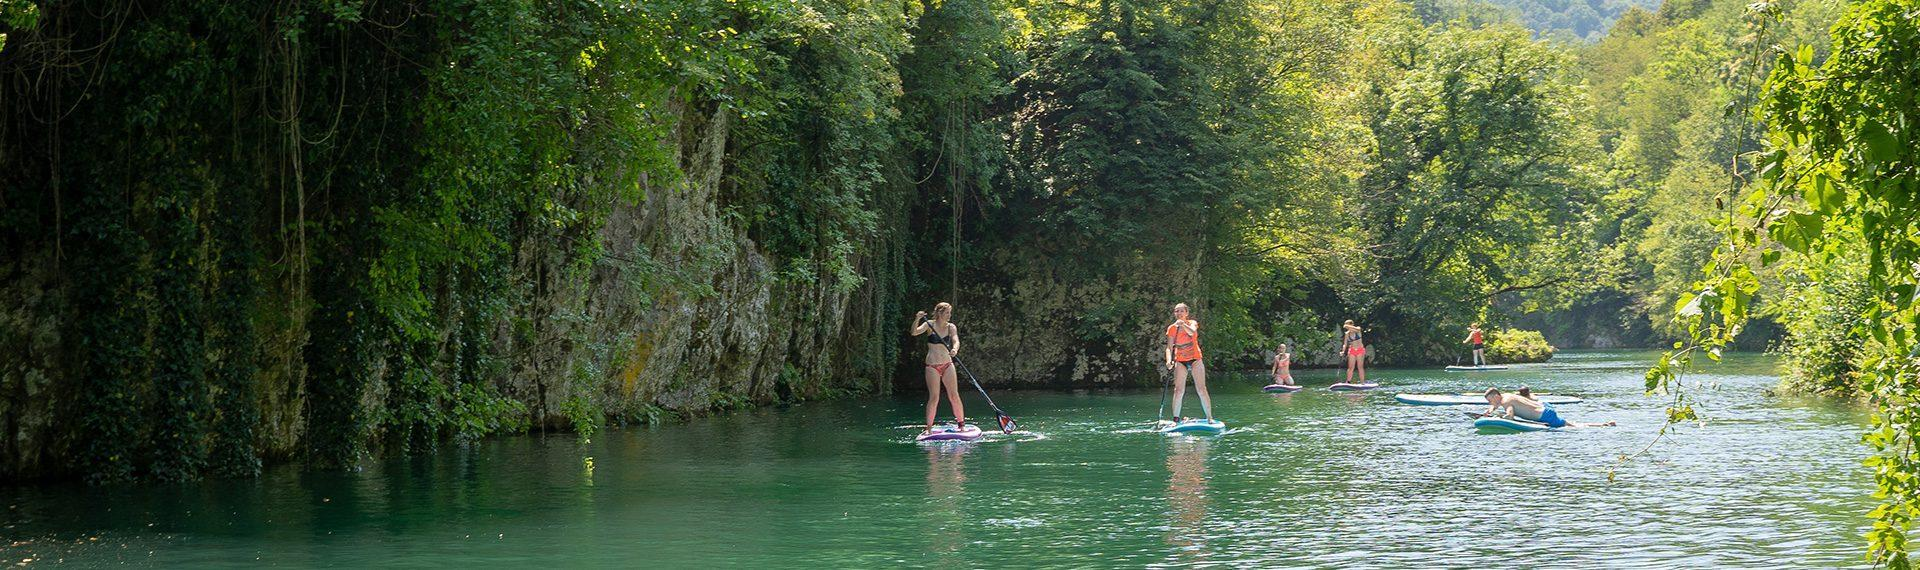 SUP tours in Slovenia